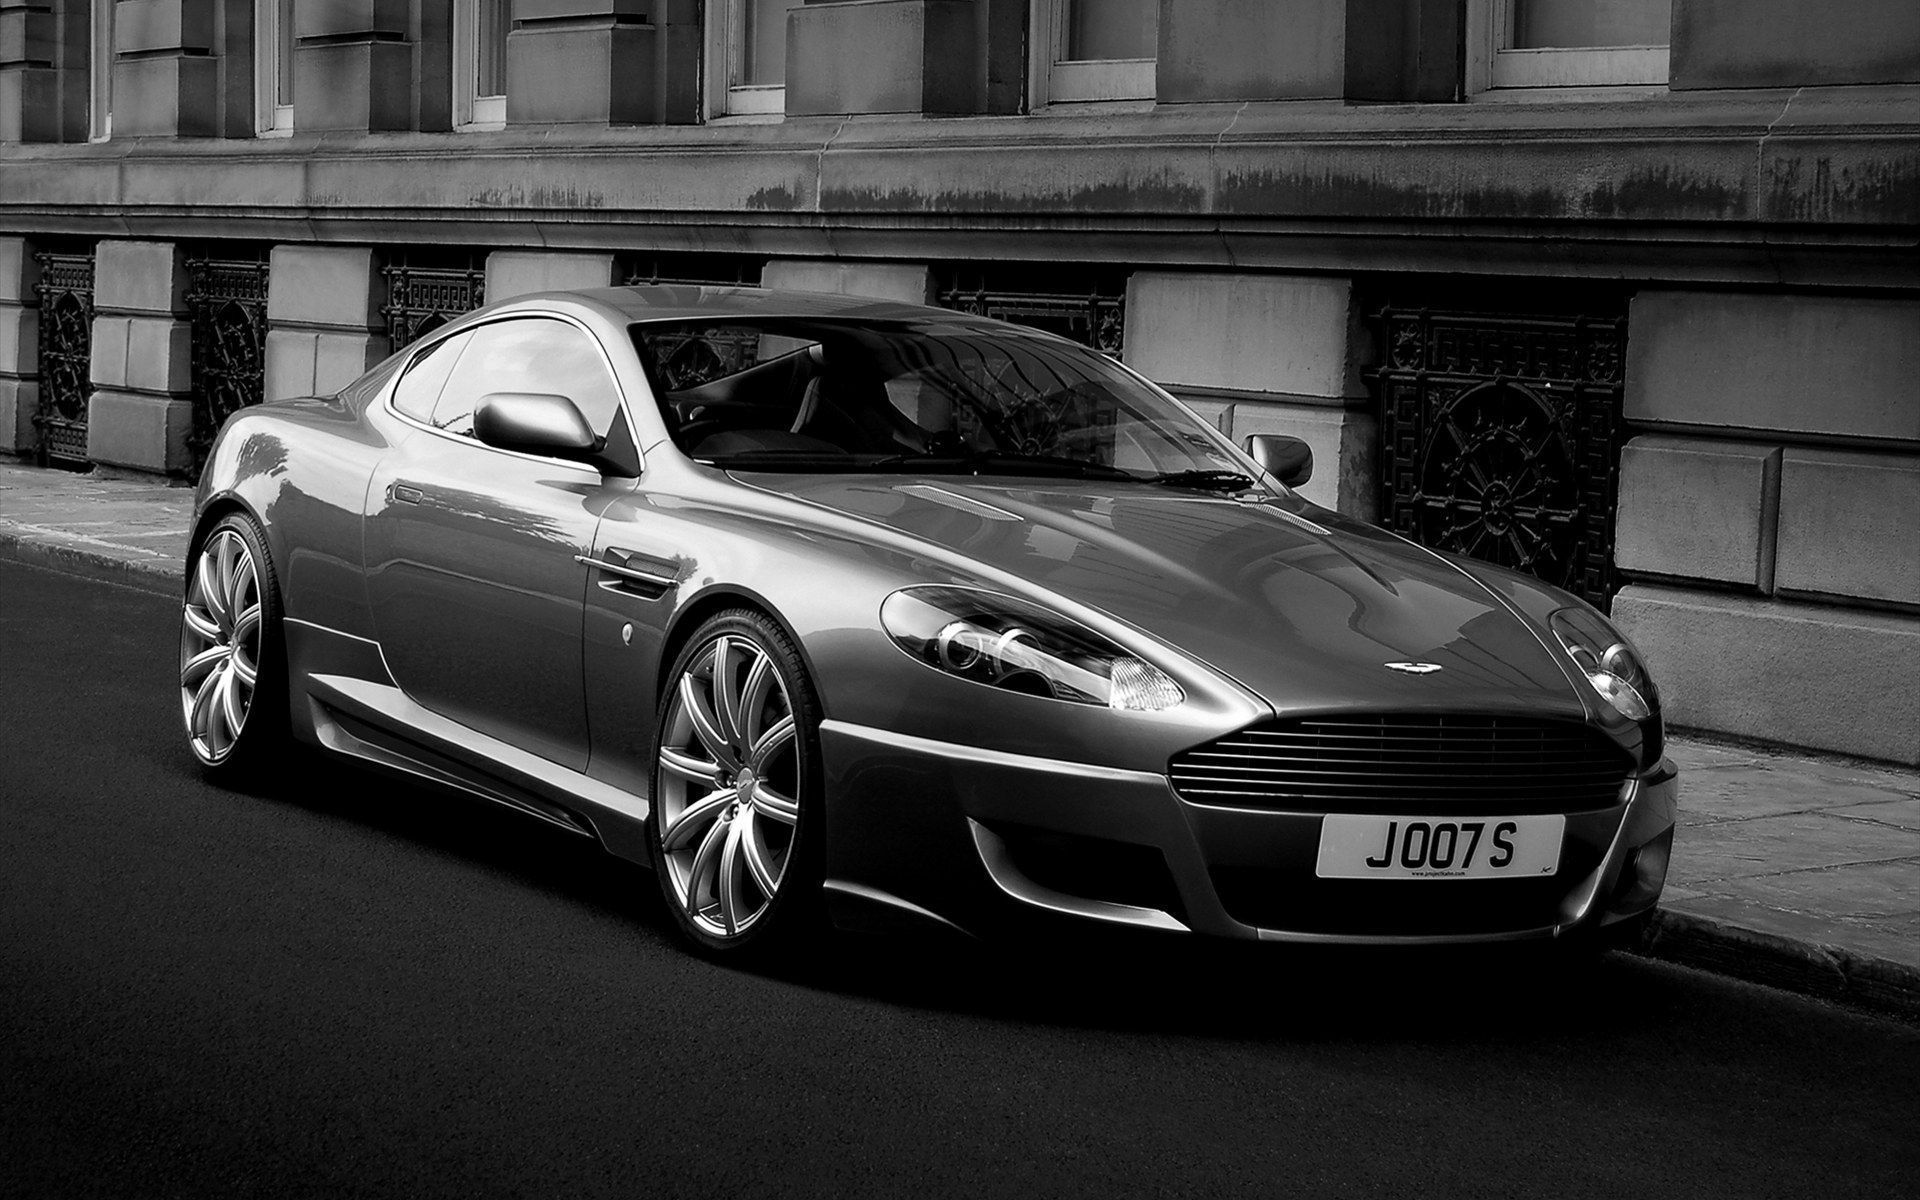 Aston Martin Db9 Widescreen